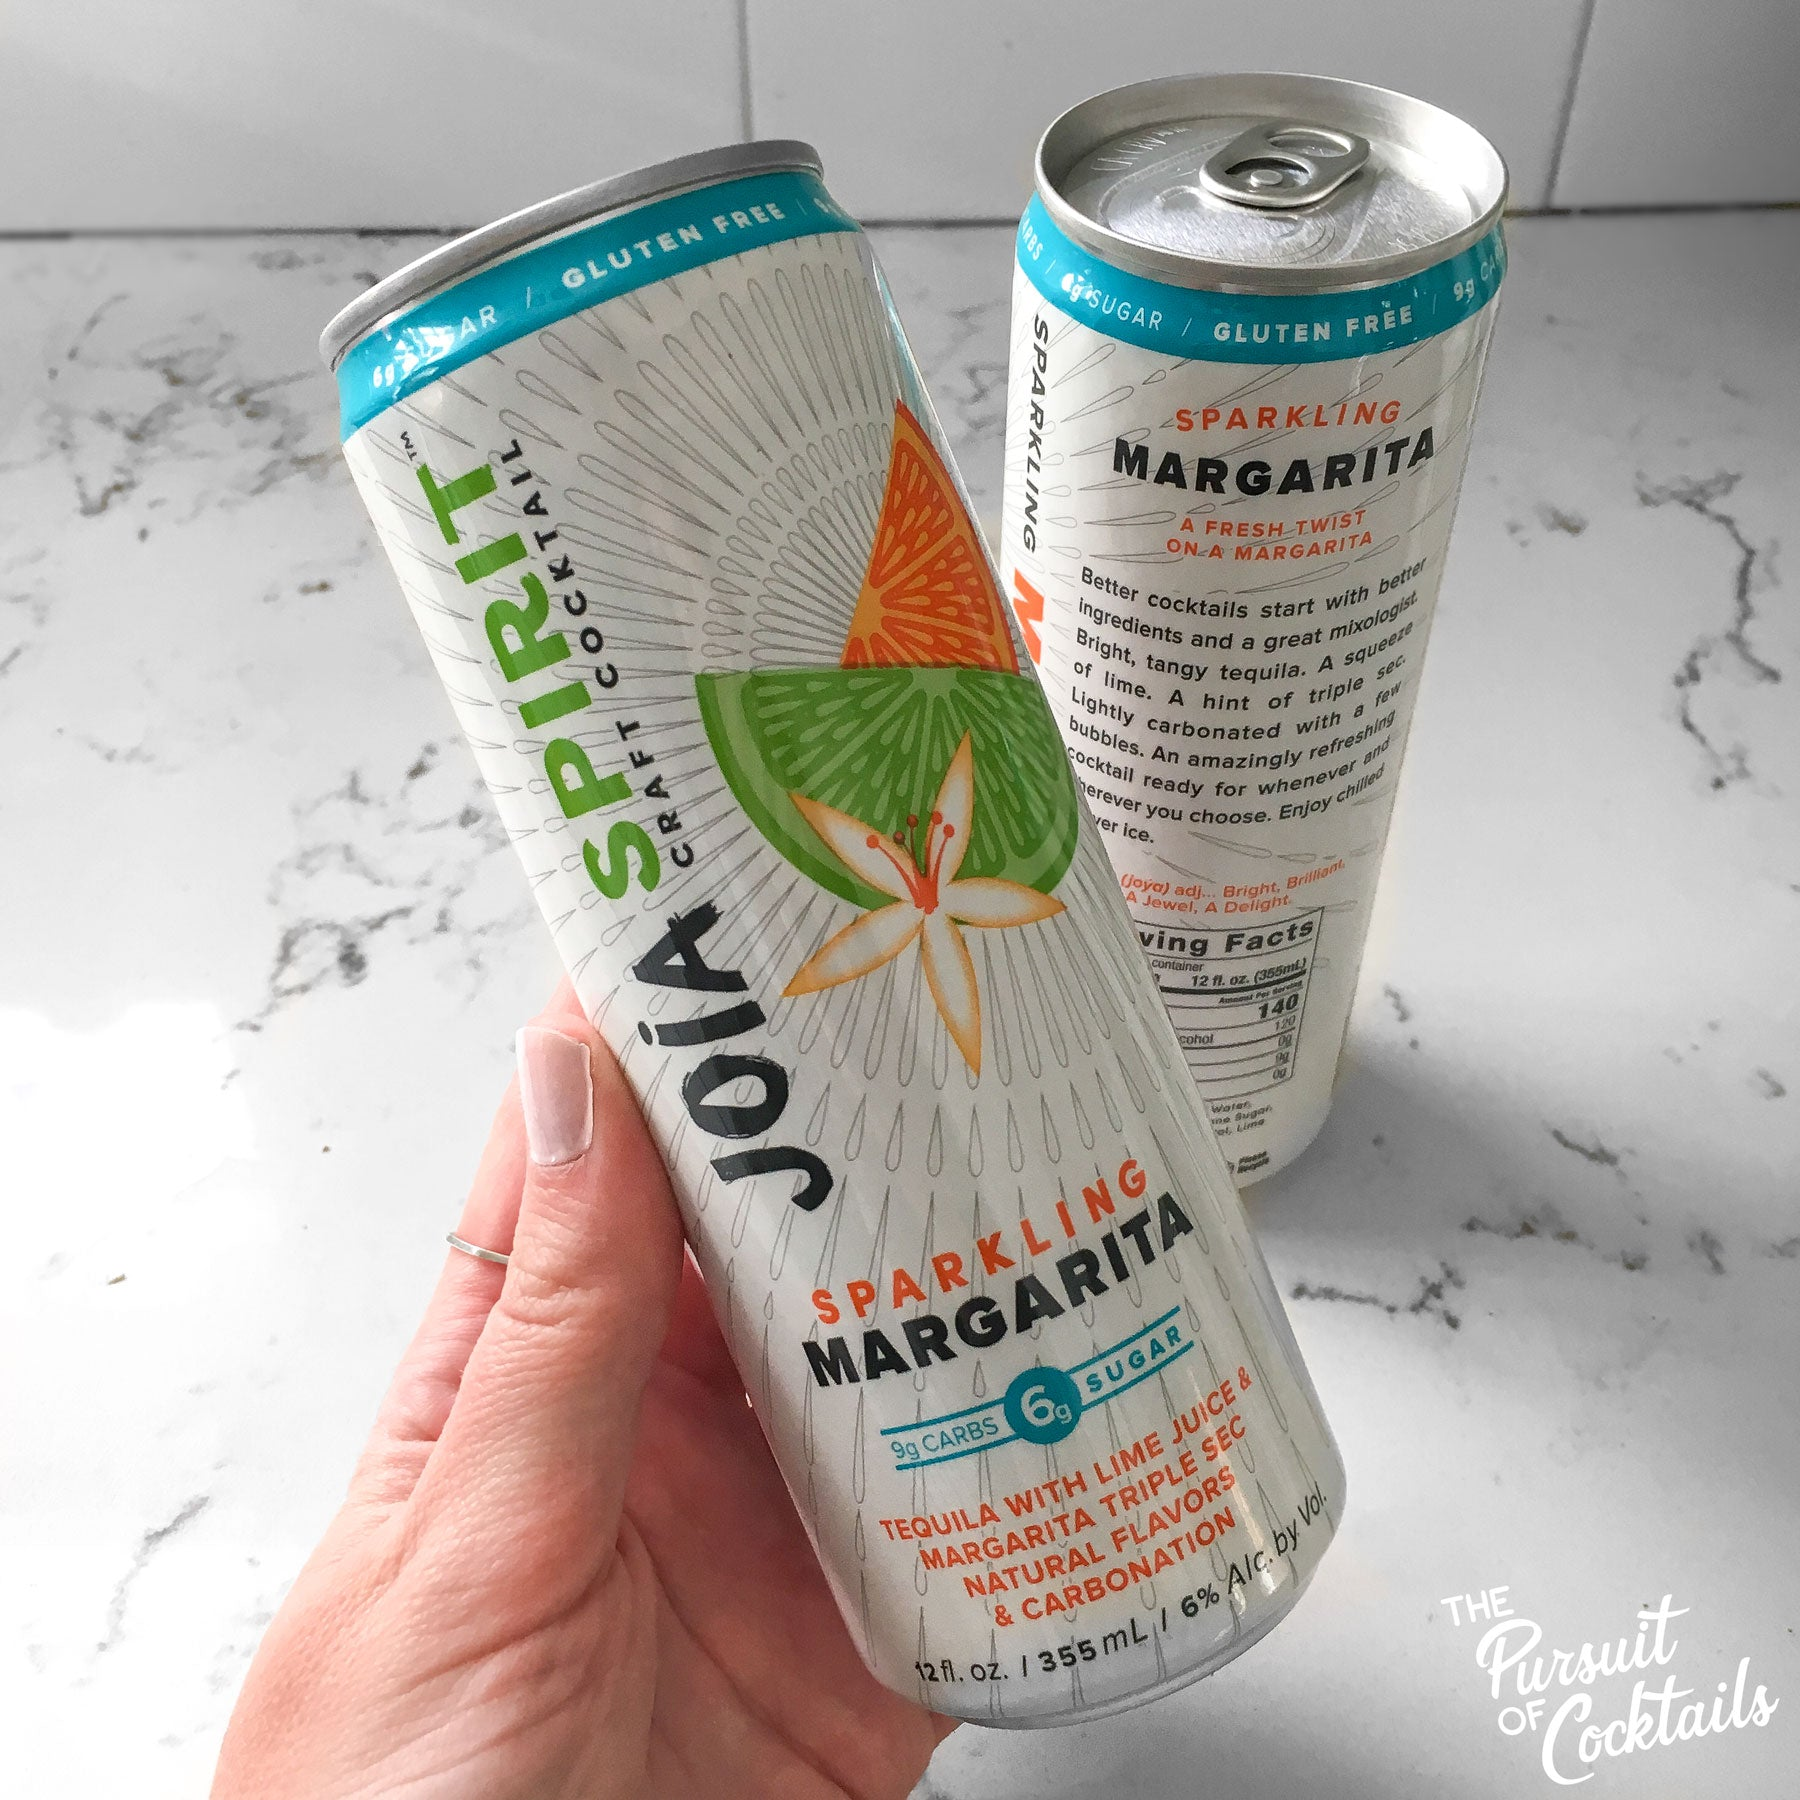 Joia Spirit sparkling margarita canned cocktail review